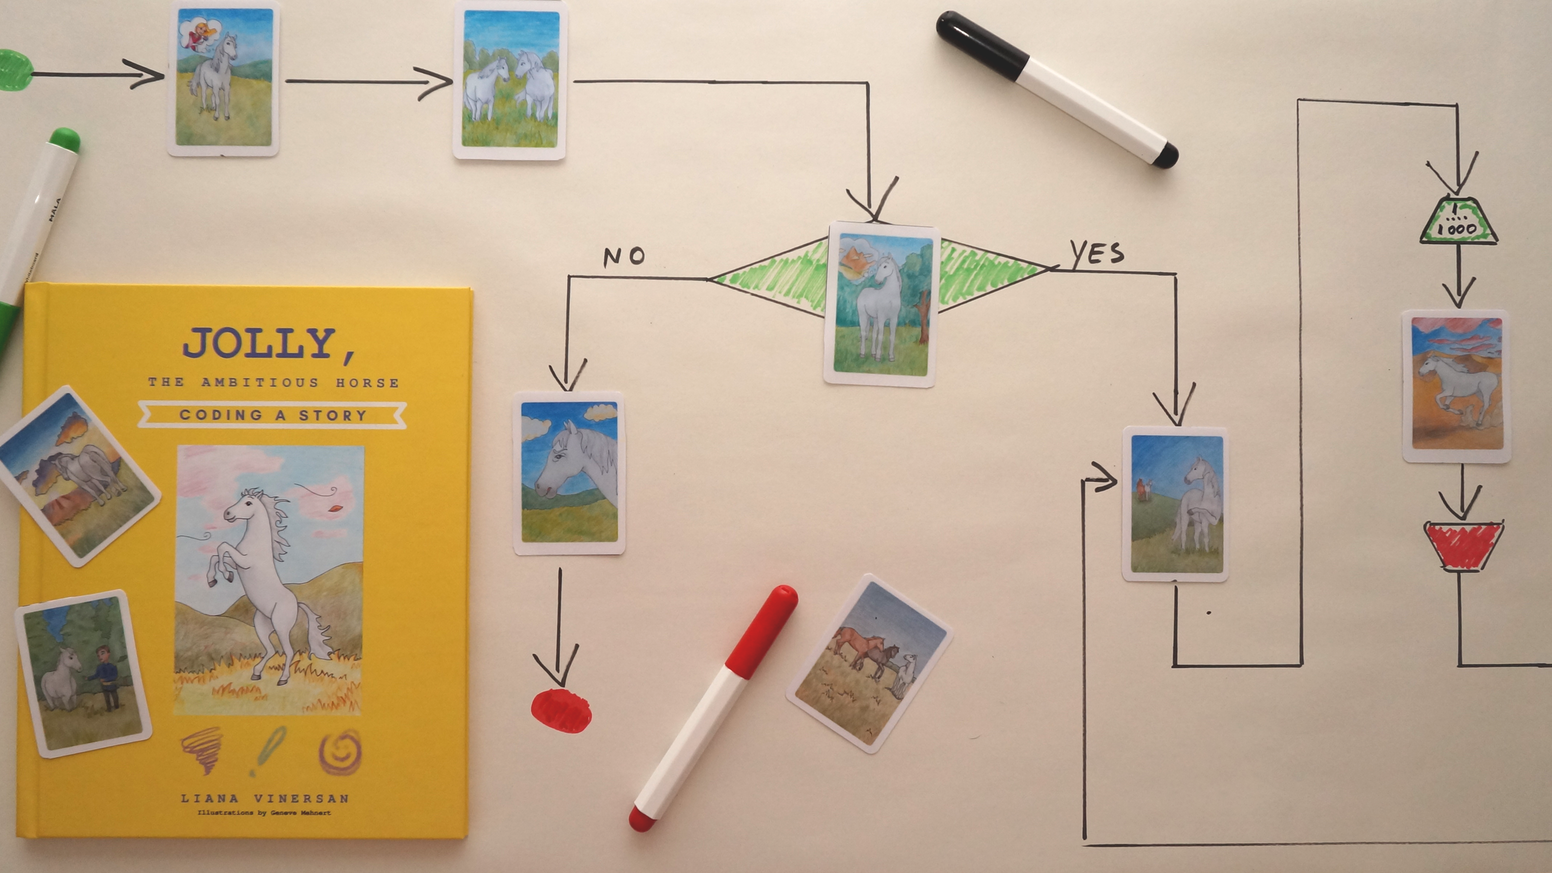 A story book that teaches children coding by explaining and designing a diagram of the action in the story.